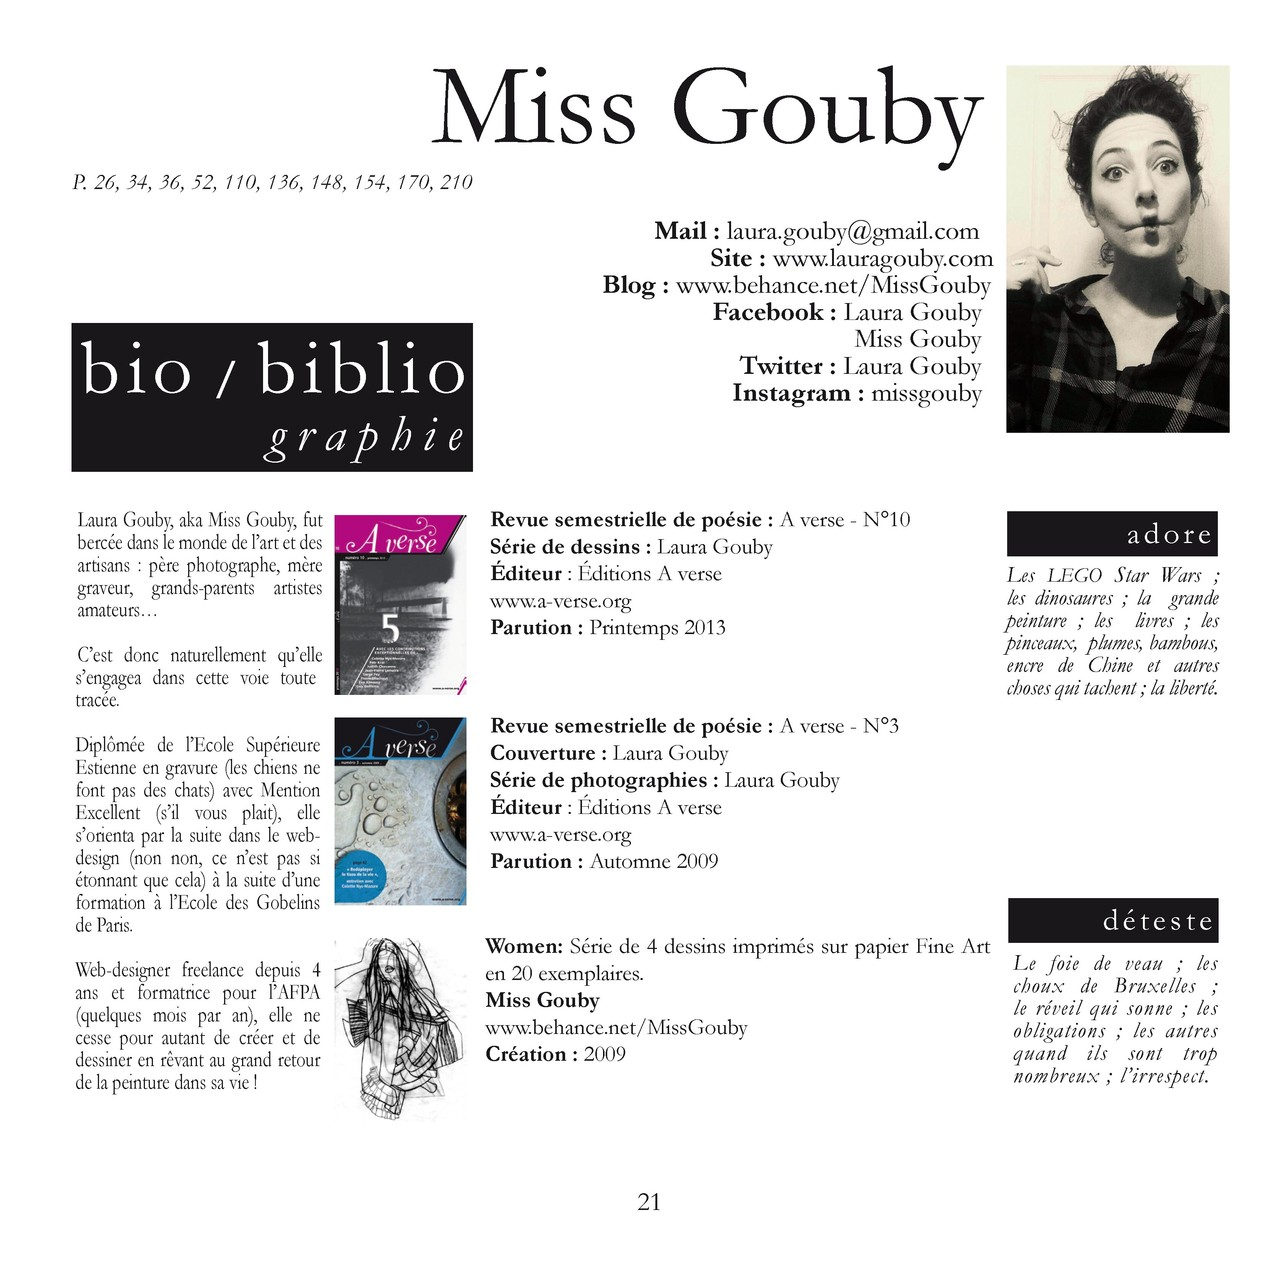 MISS GOUBY